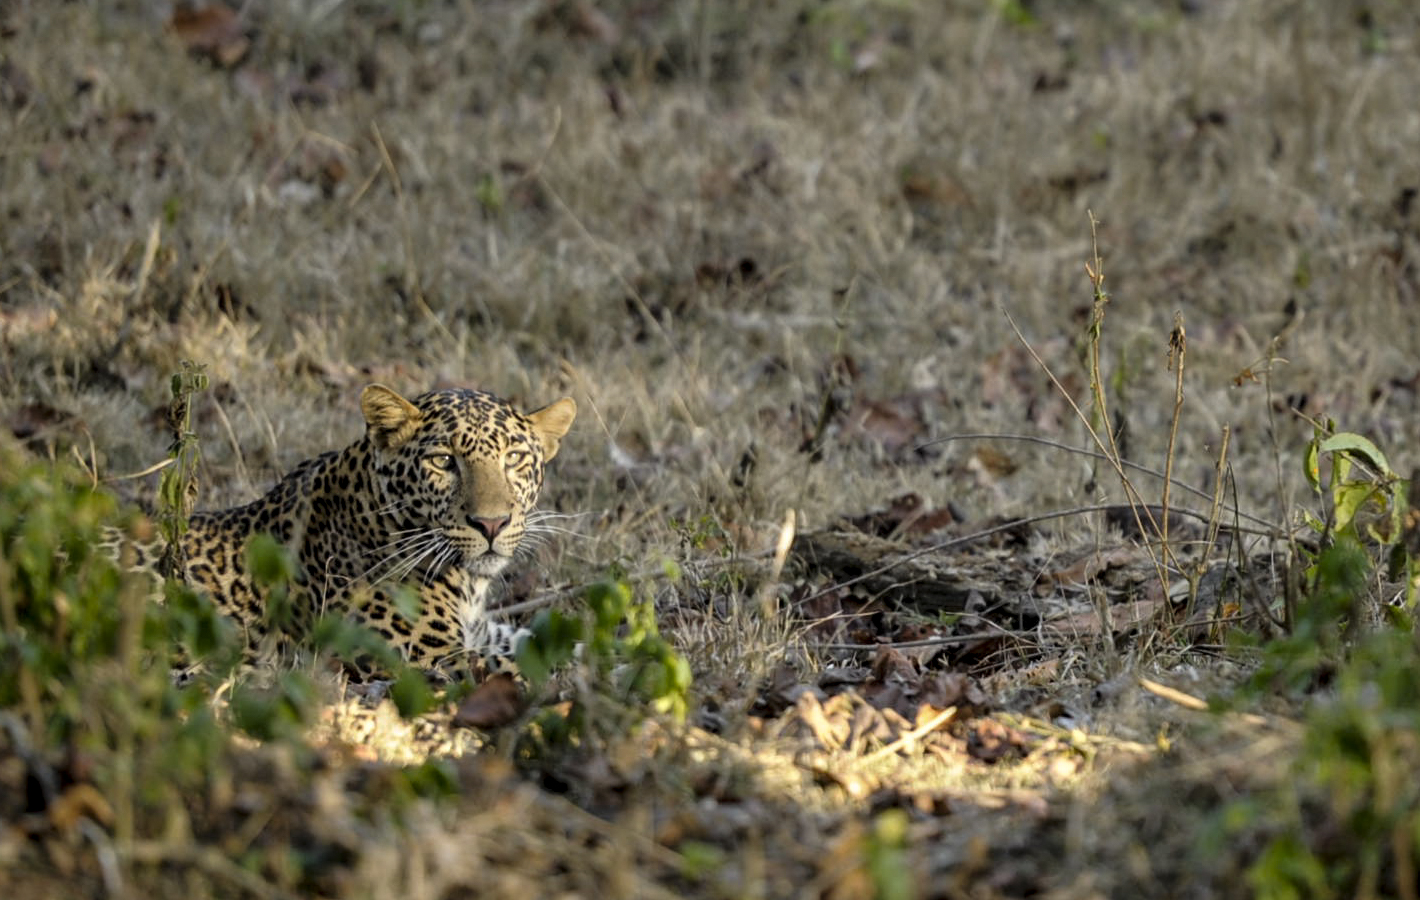 Indian leopard (Panthera pardus fusca)